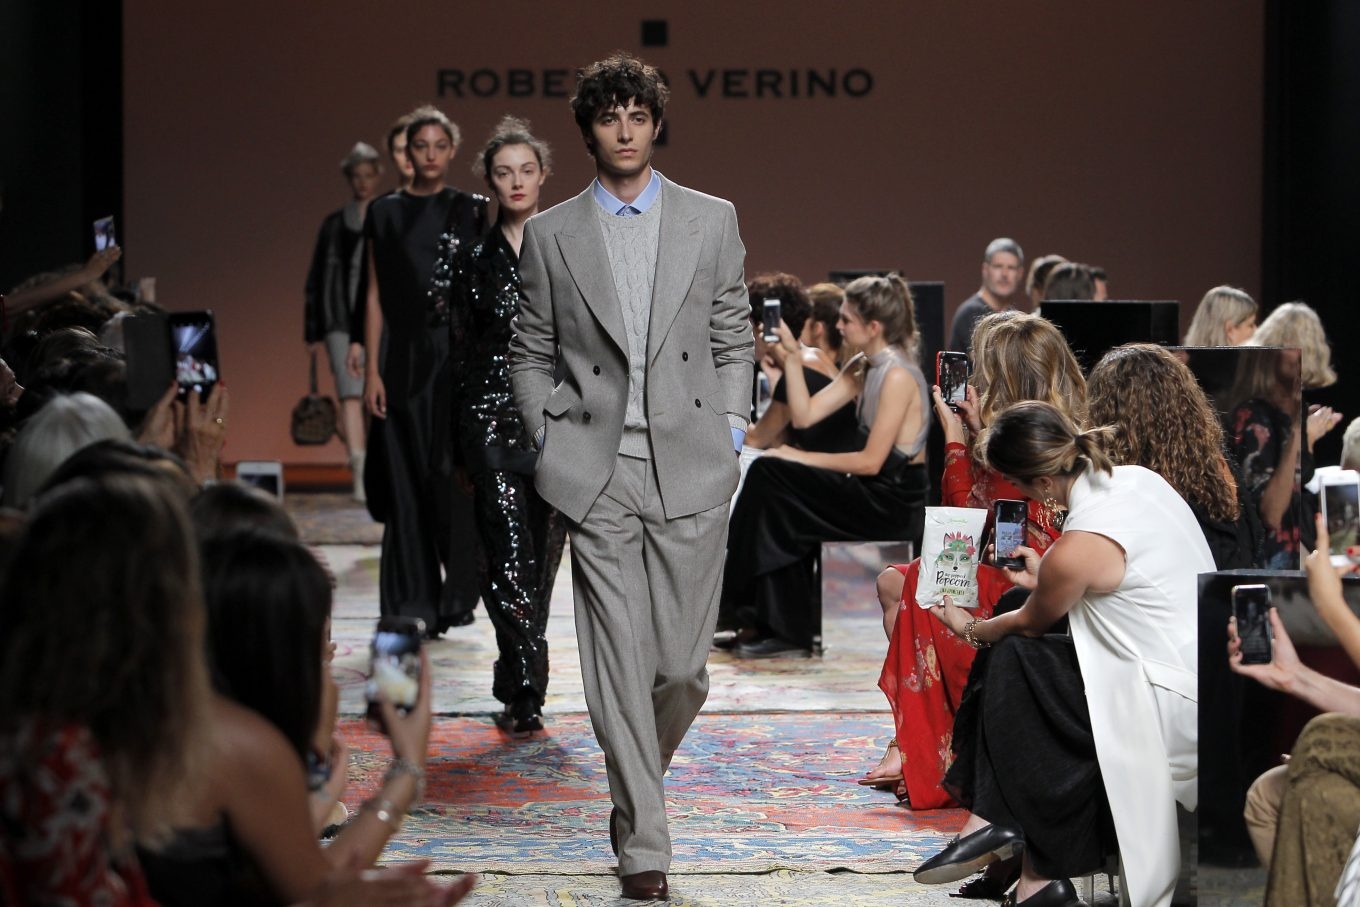 Roberto Verino Fashion Week